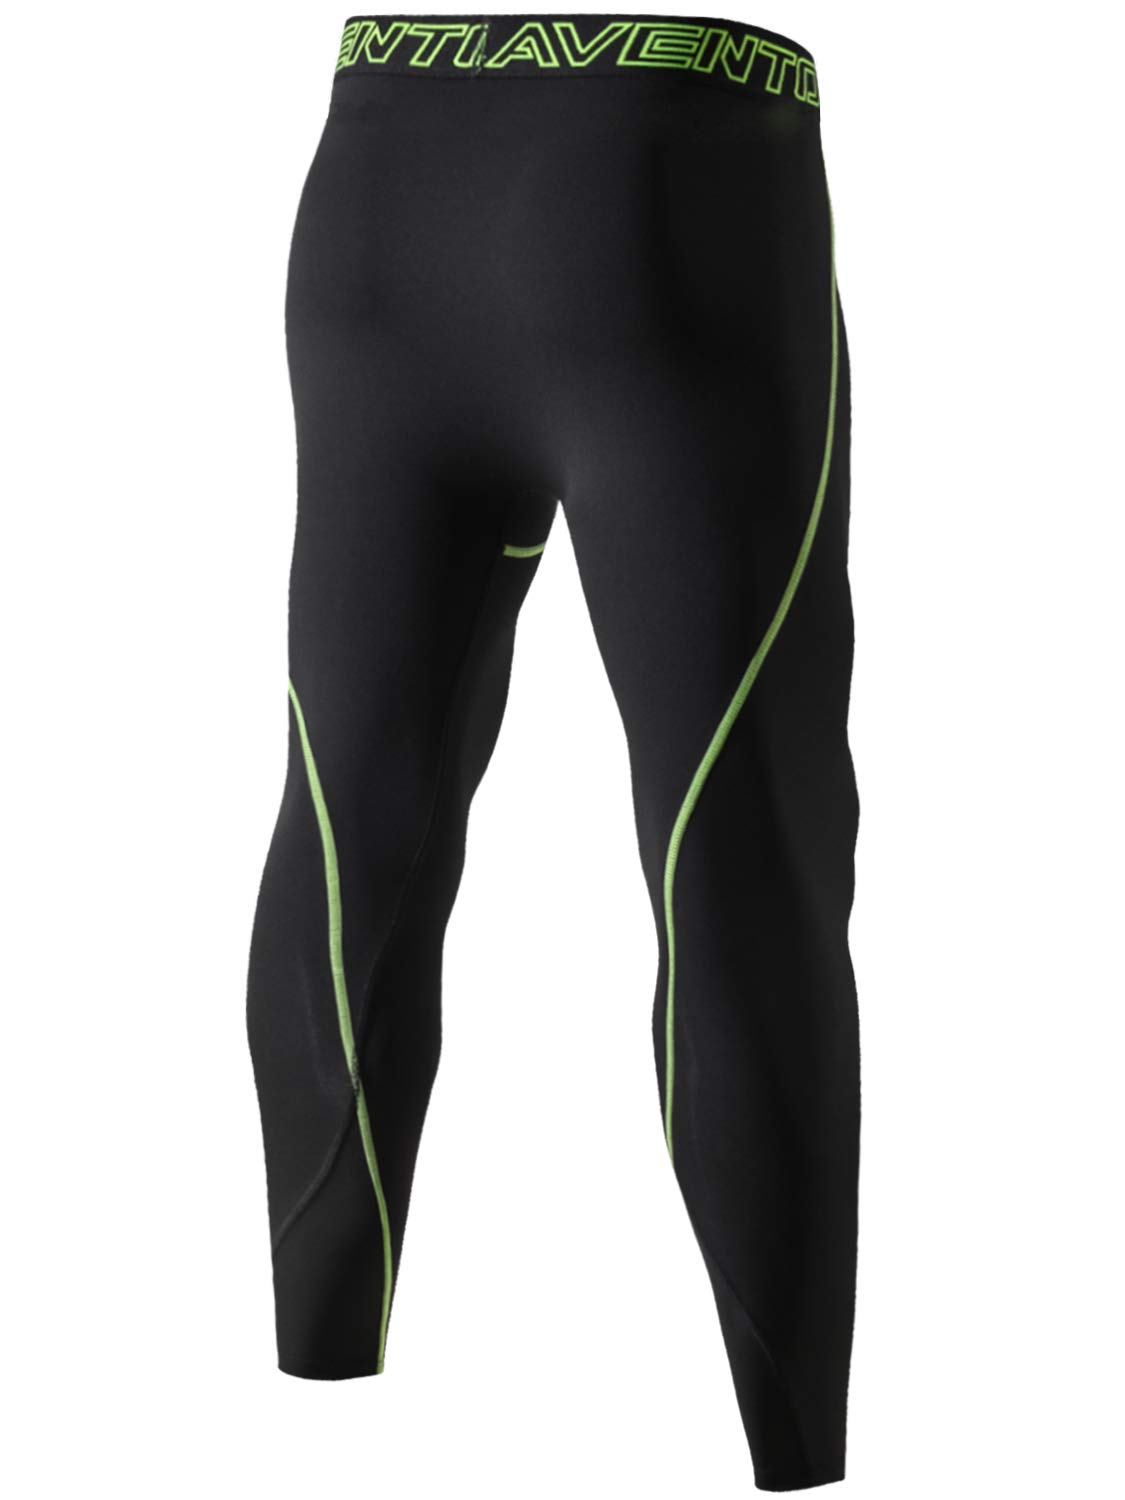 3dad3df3f5cbe3 Amazon.com : Lavento Men's Compression Pants Cool Dry Workout Tights :  Clothing